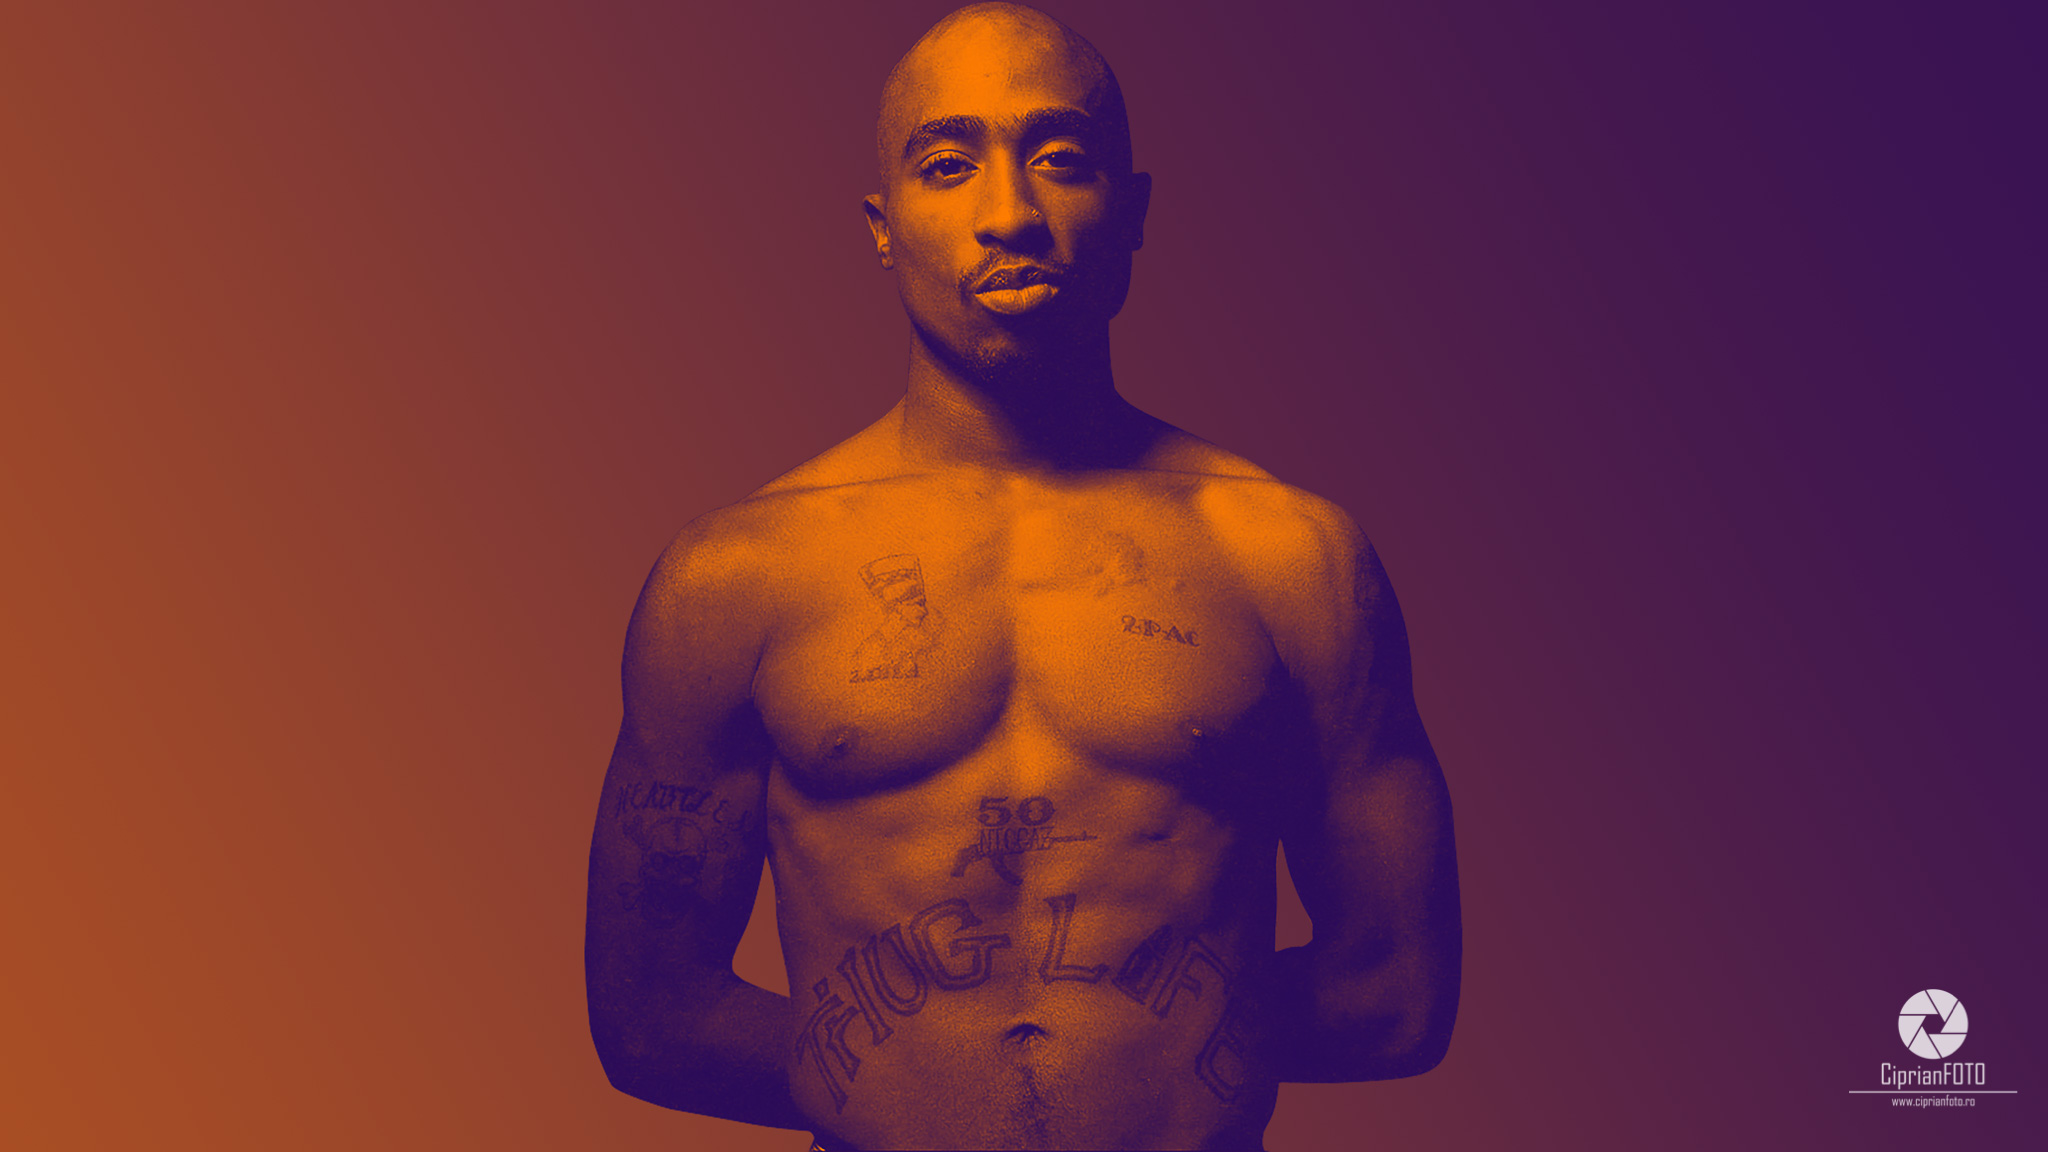 Doutone Effect In Photoshop - Tupac Amaru Shakur